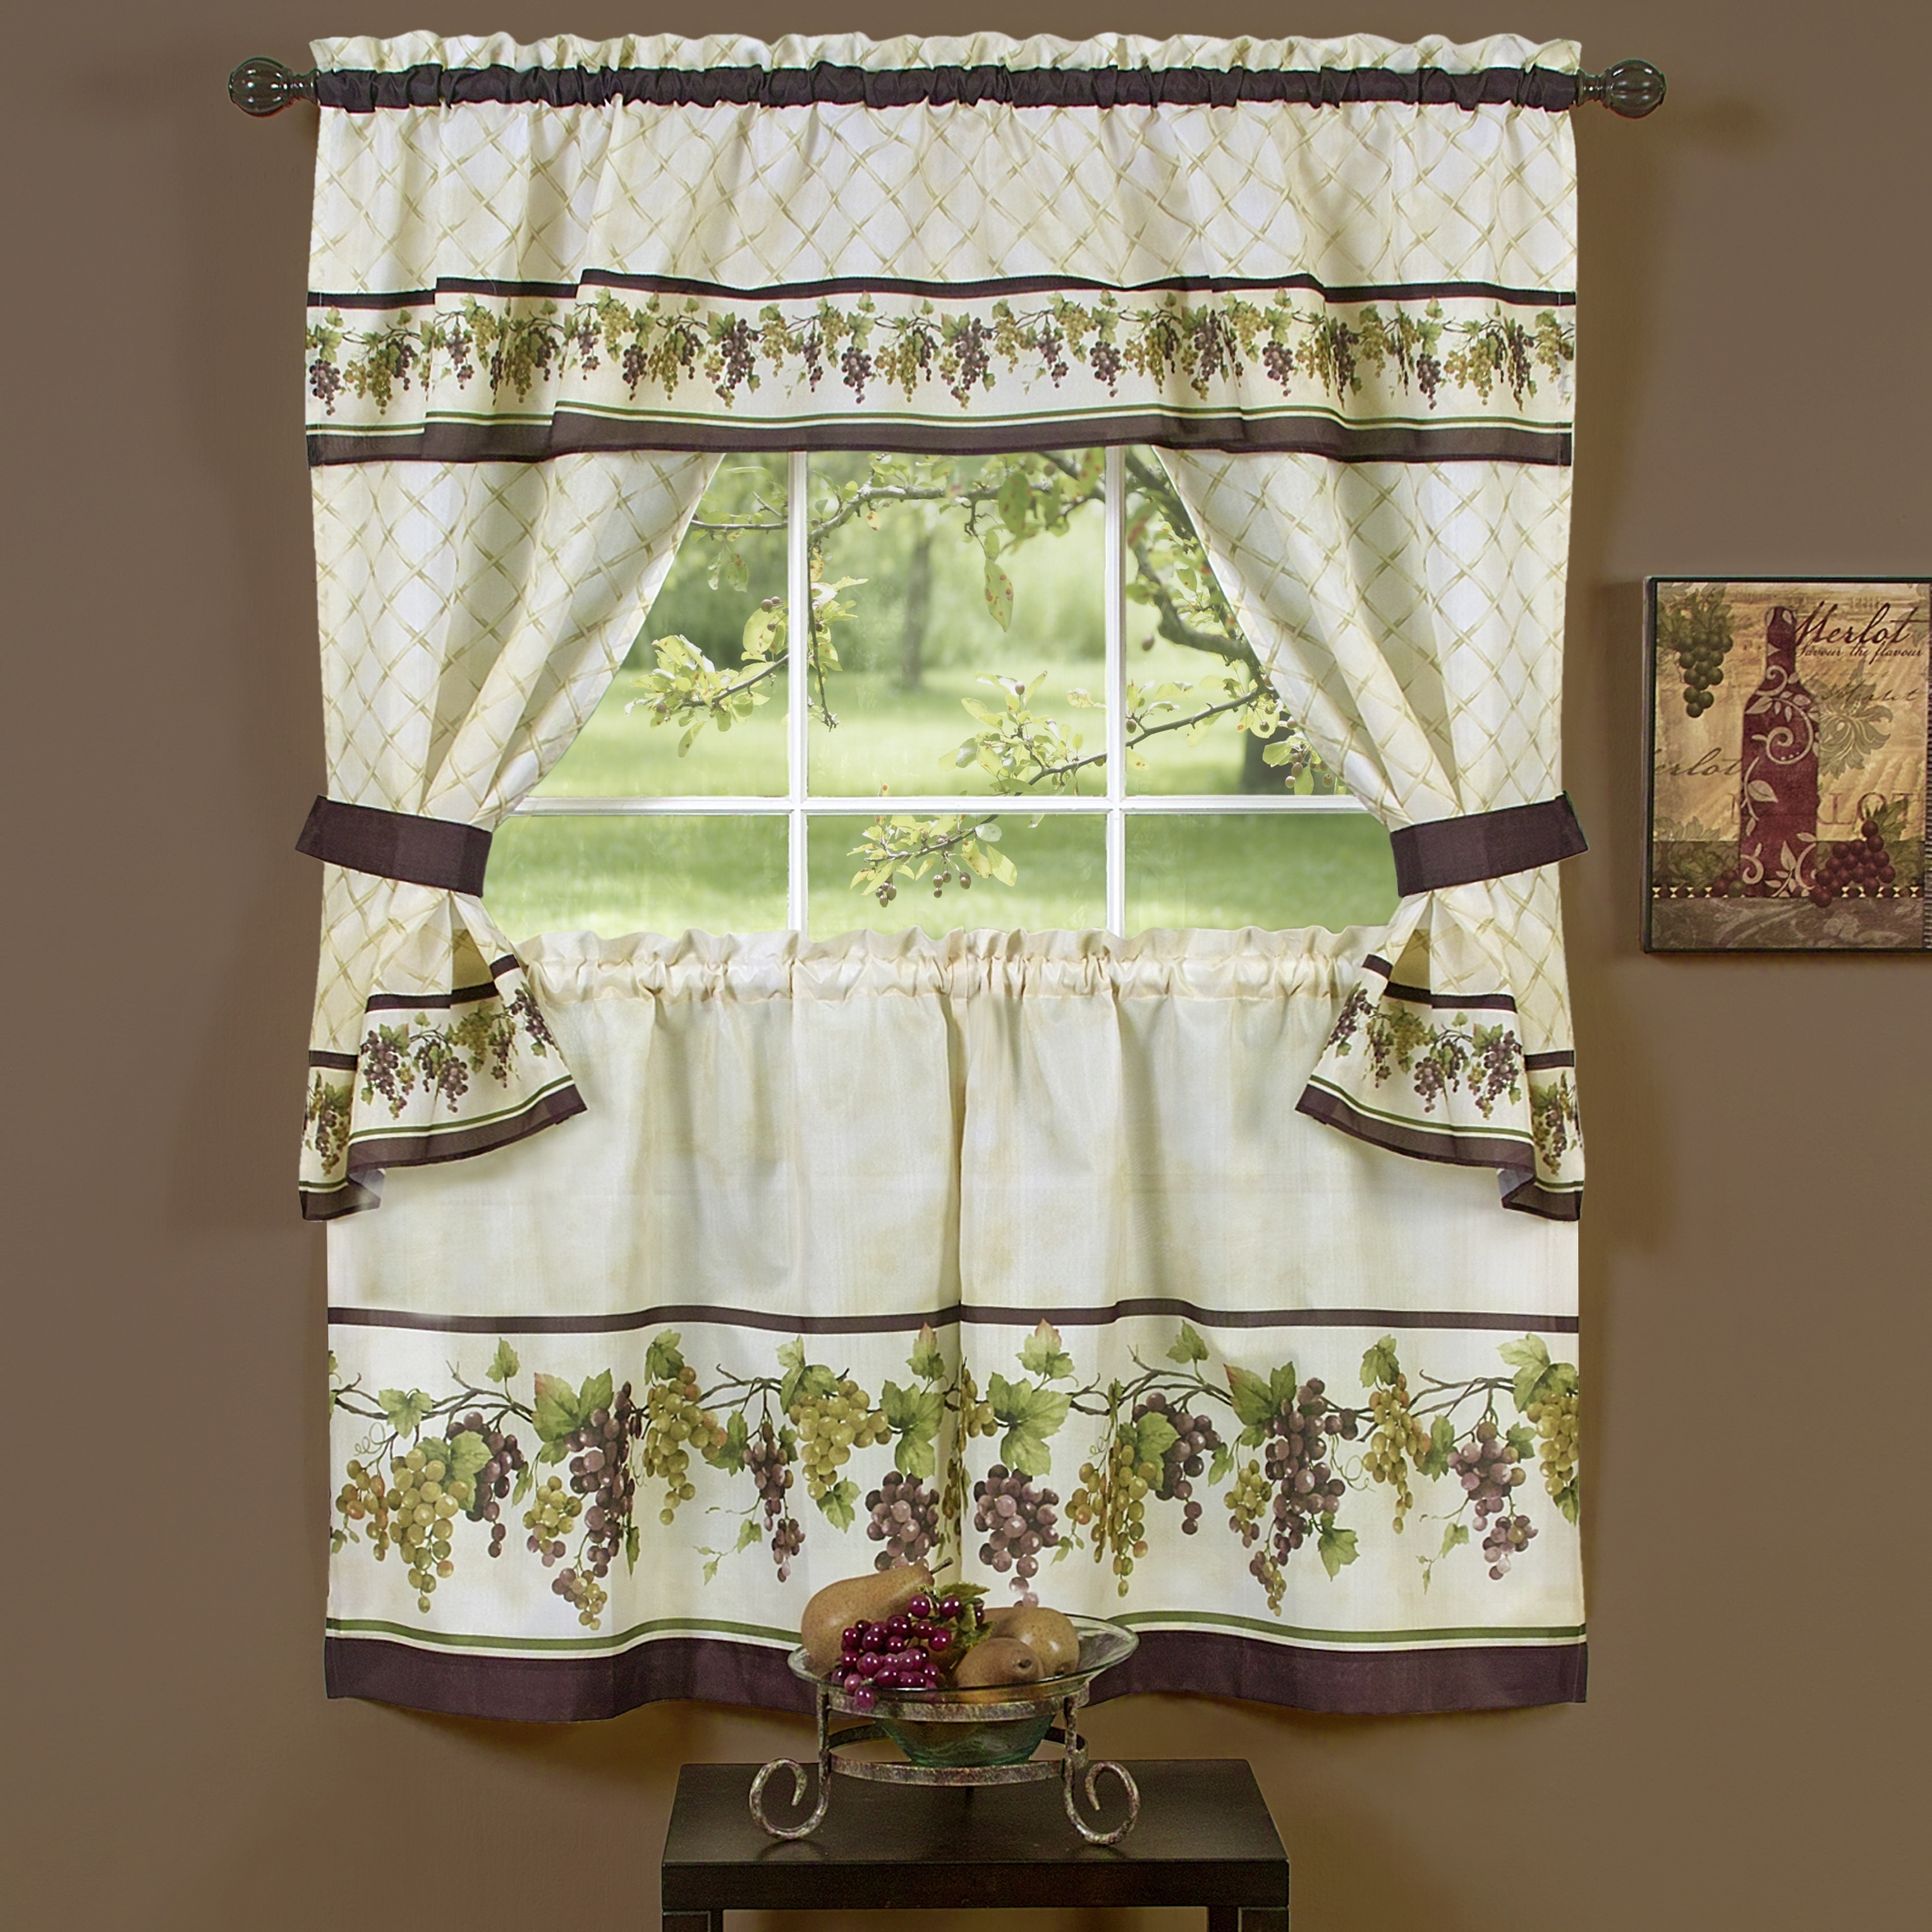 Complete Cottage Curtain Set With an Antique and Aubergin...